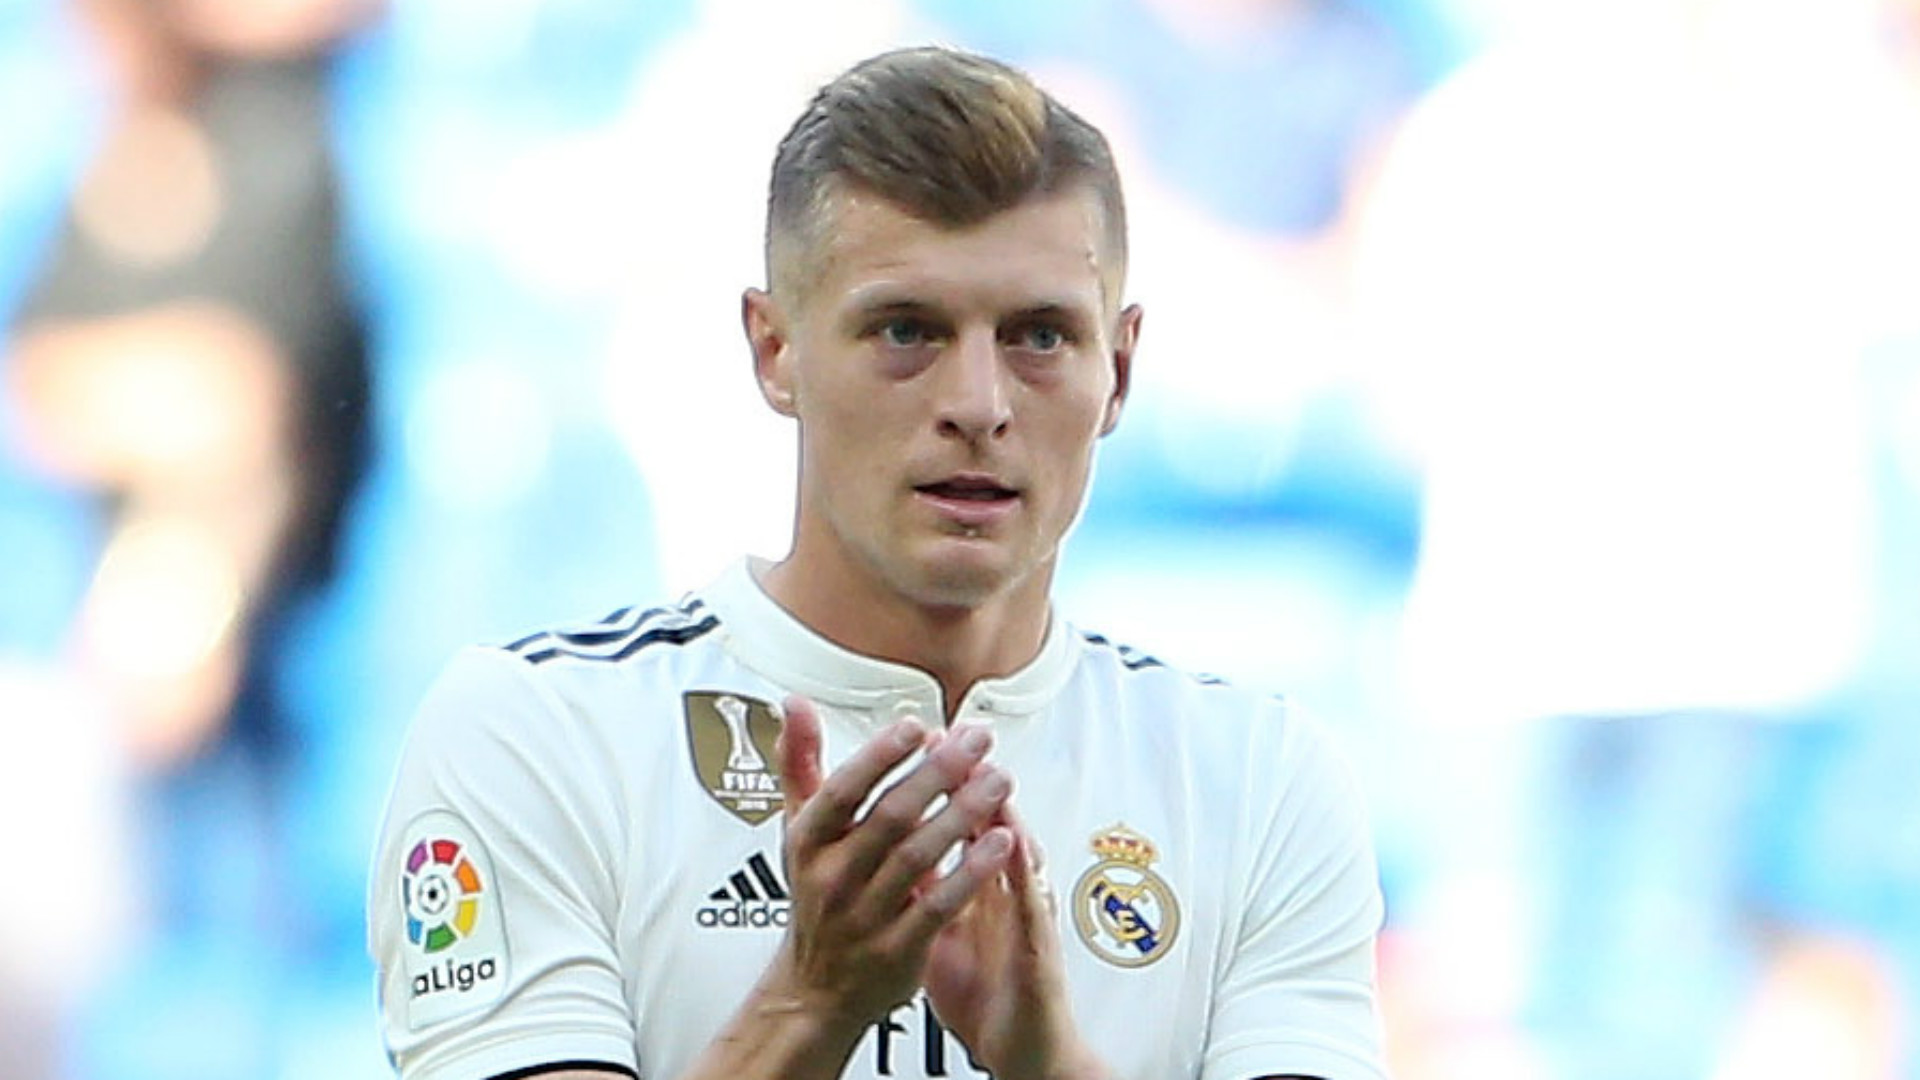 Real Madrid: I'll keep my place if Pogba arrives, says Kroos